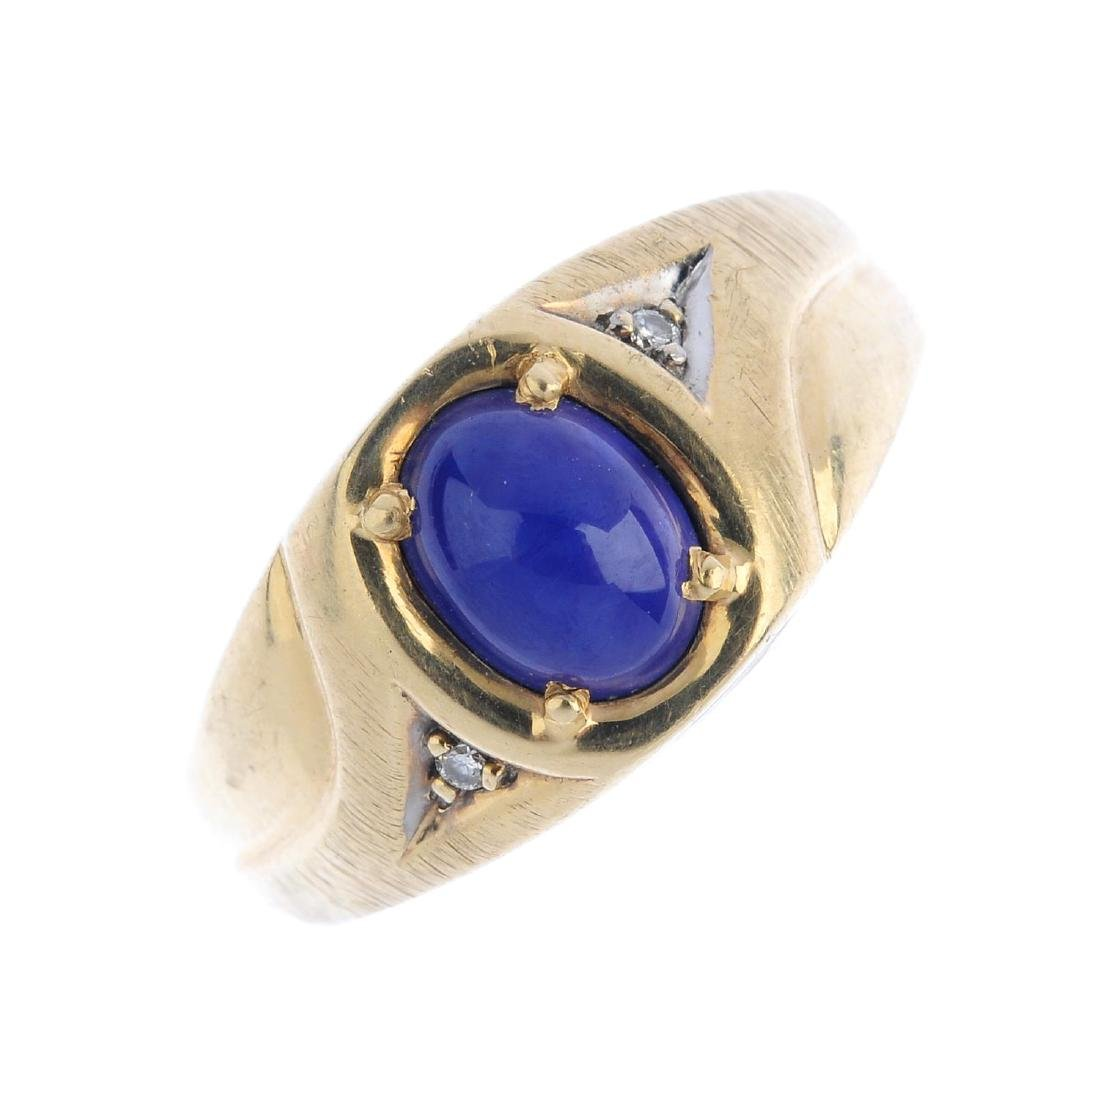 A star sapphire ring. The oval star sapphire cabochon,